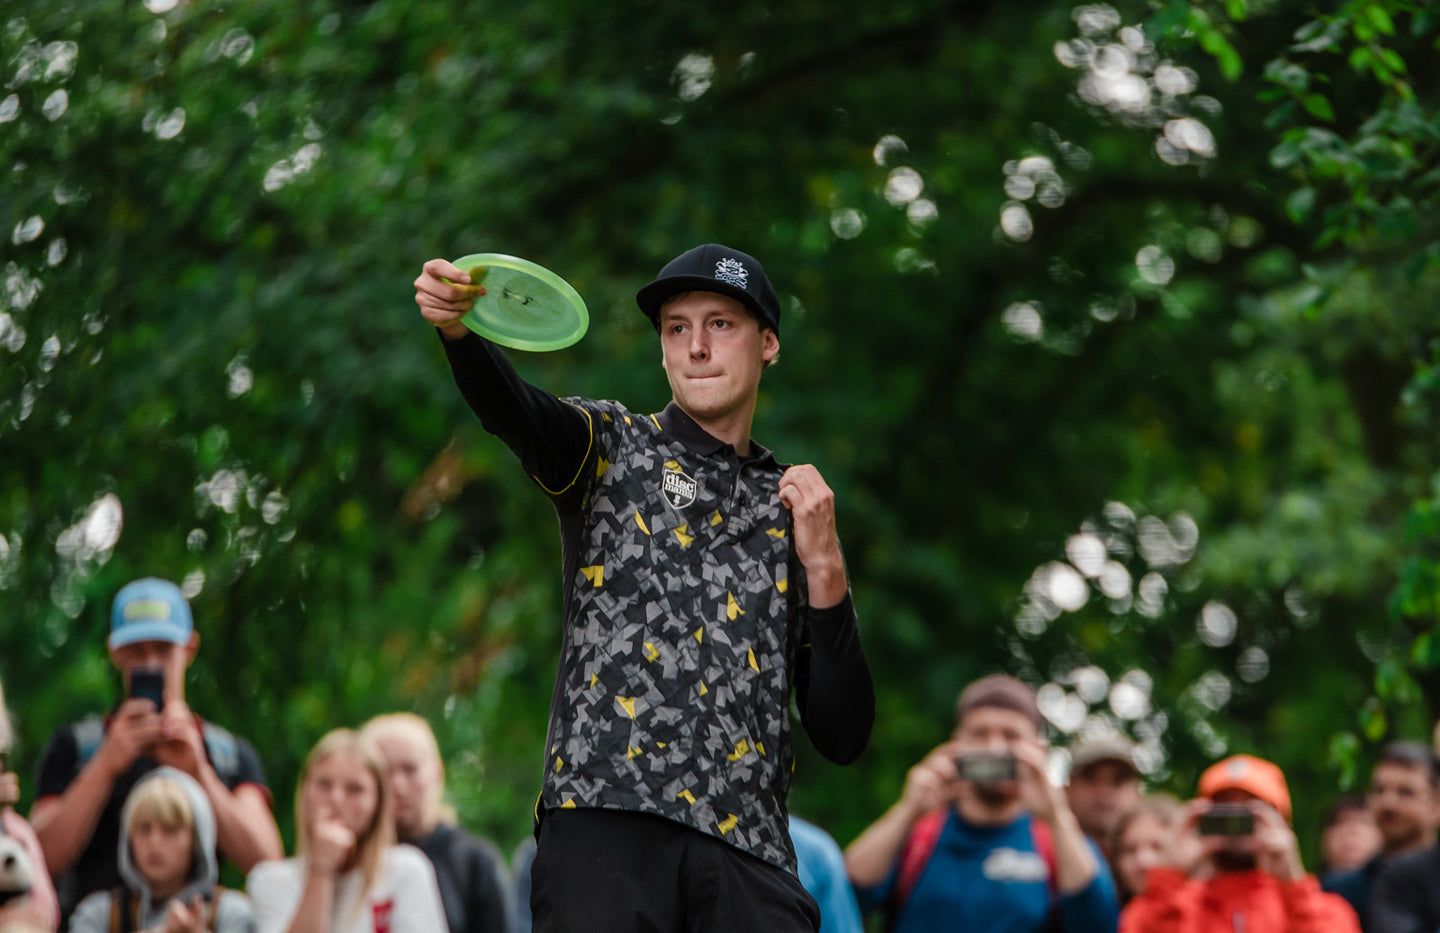 Simon Lizotte lines up a shot at the Konopiste Open